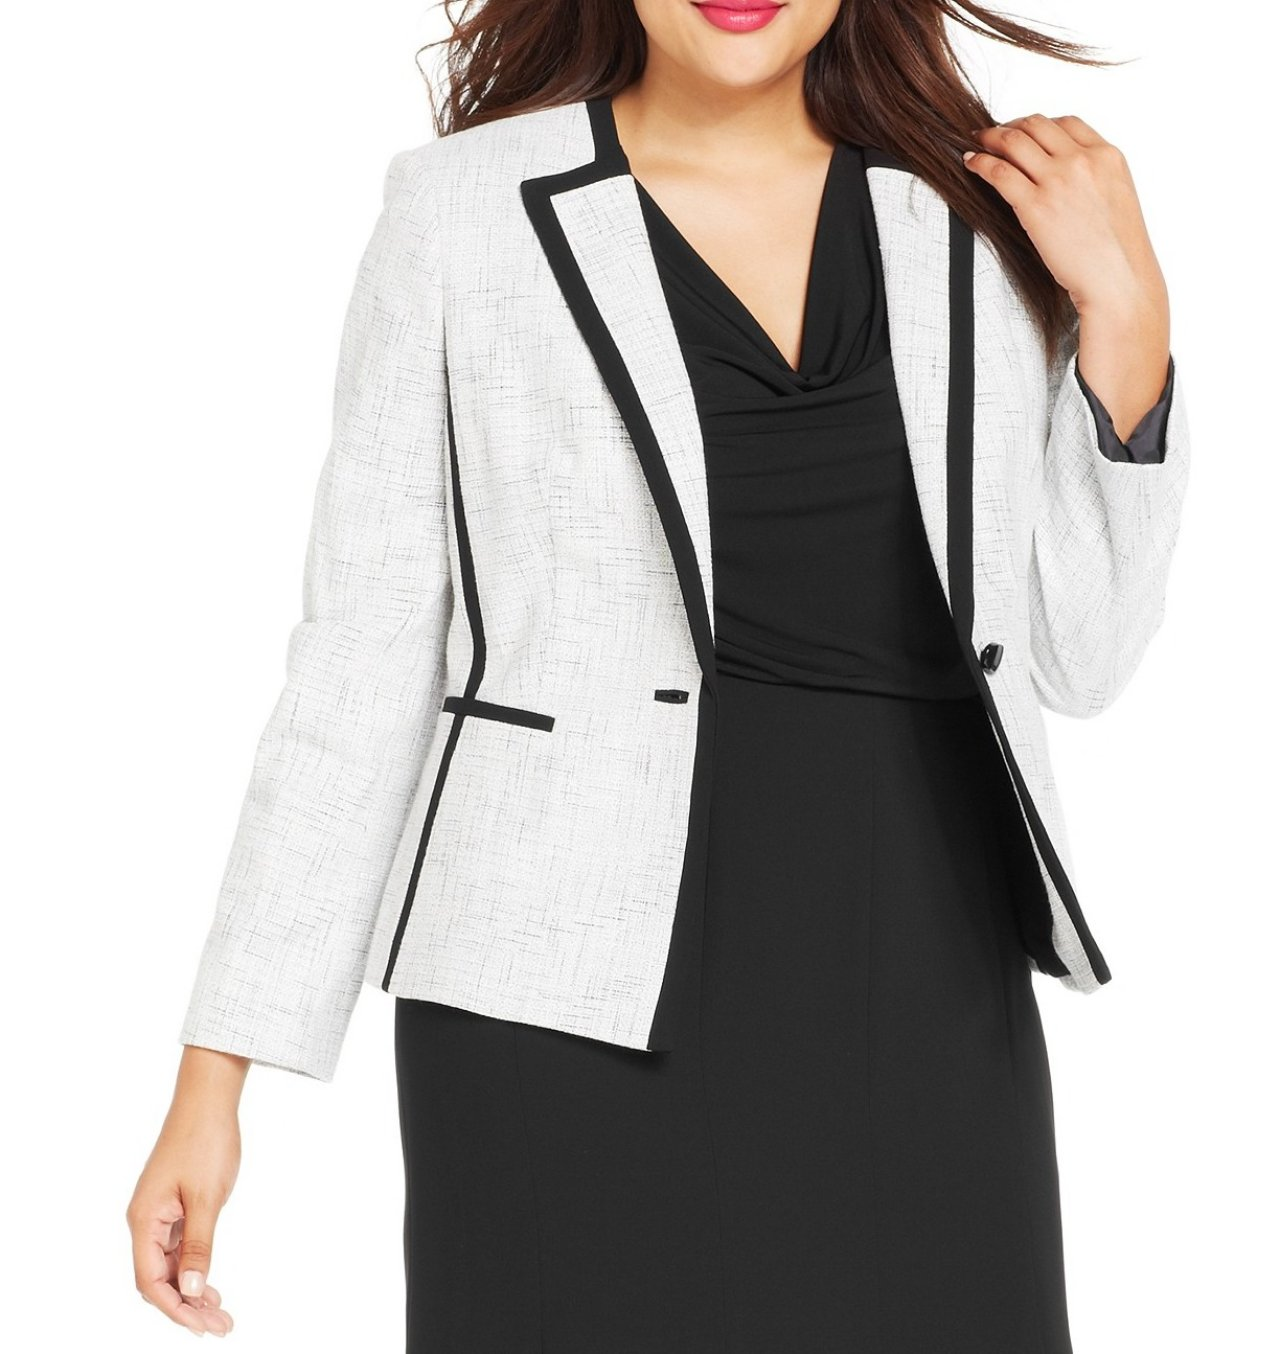 Plus Size & Curve Coats and Jackets Whether it's freezing outside or just a late summer night getting chilly, our selection of plus size coats and jackets is the perfect last touch to your outfit. Layer up or keep cosy, our plus size jackets are just what you need!